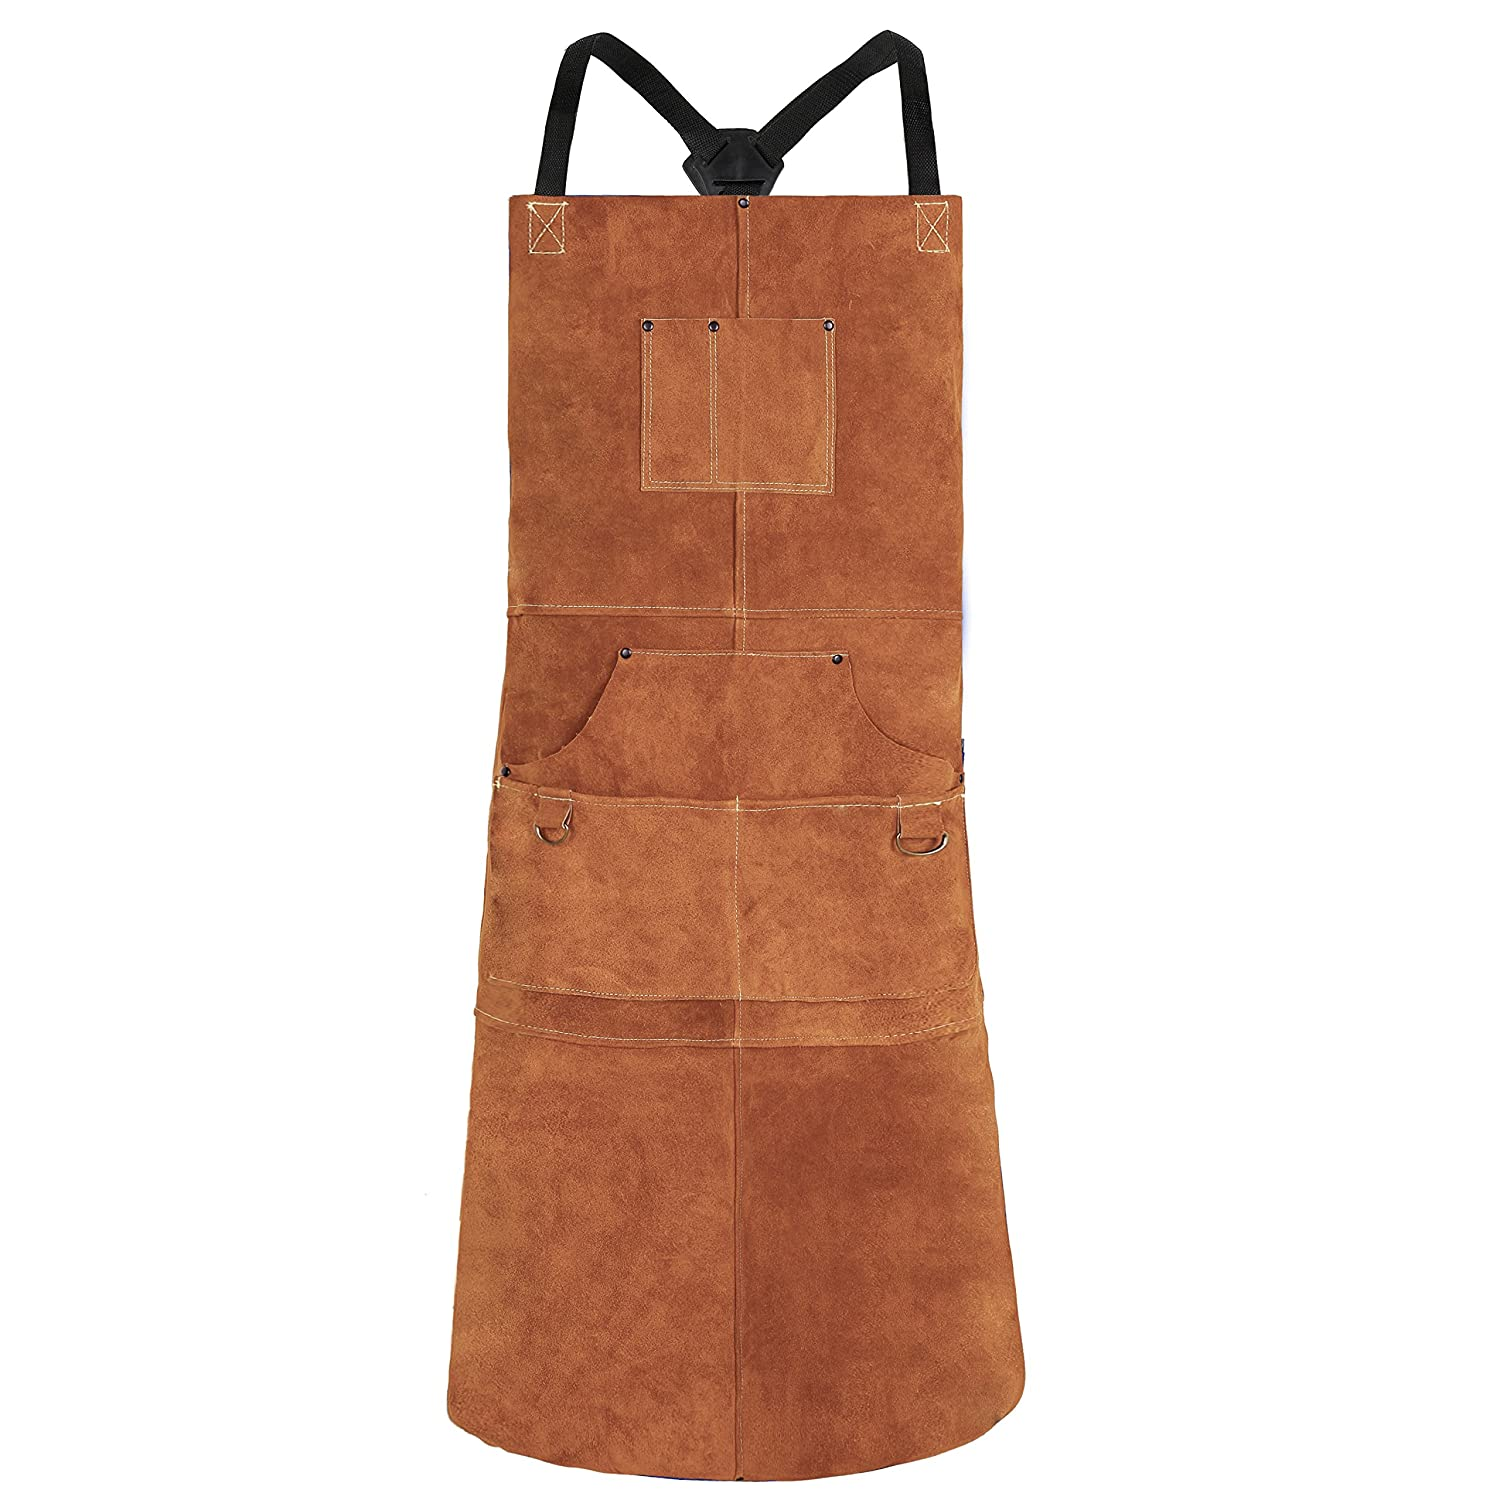 Leather Welding Apron by LeaSeek - Heavy Duty Tools Shop Apron with 6 Pockets, 24' X 42' Extra Long, Brown 24 X 42 Extra Long